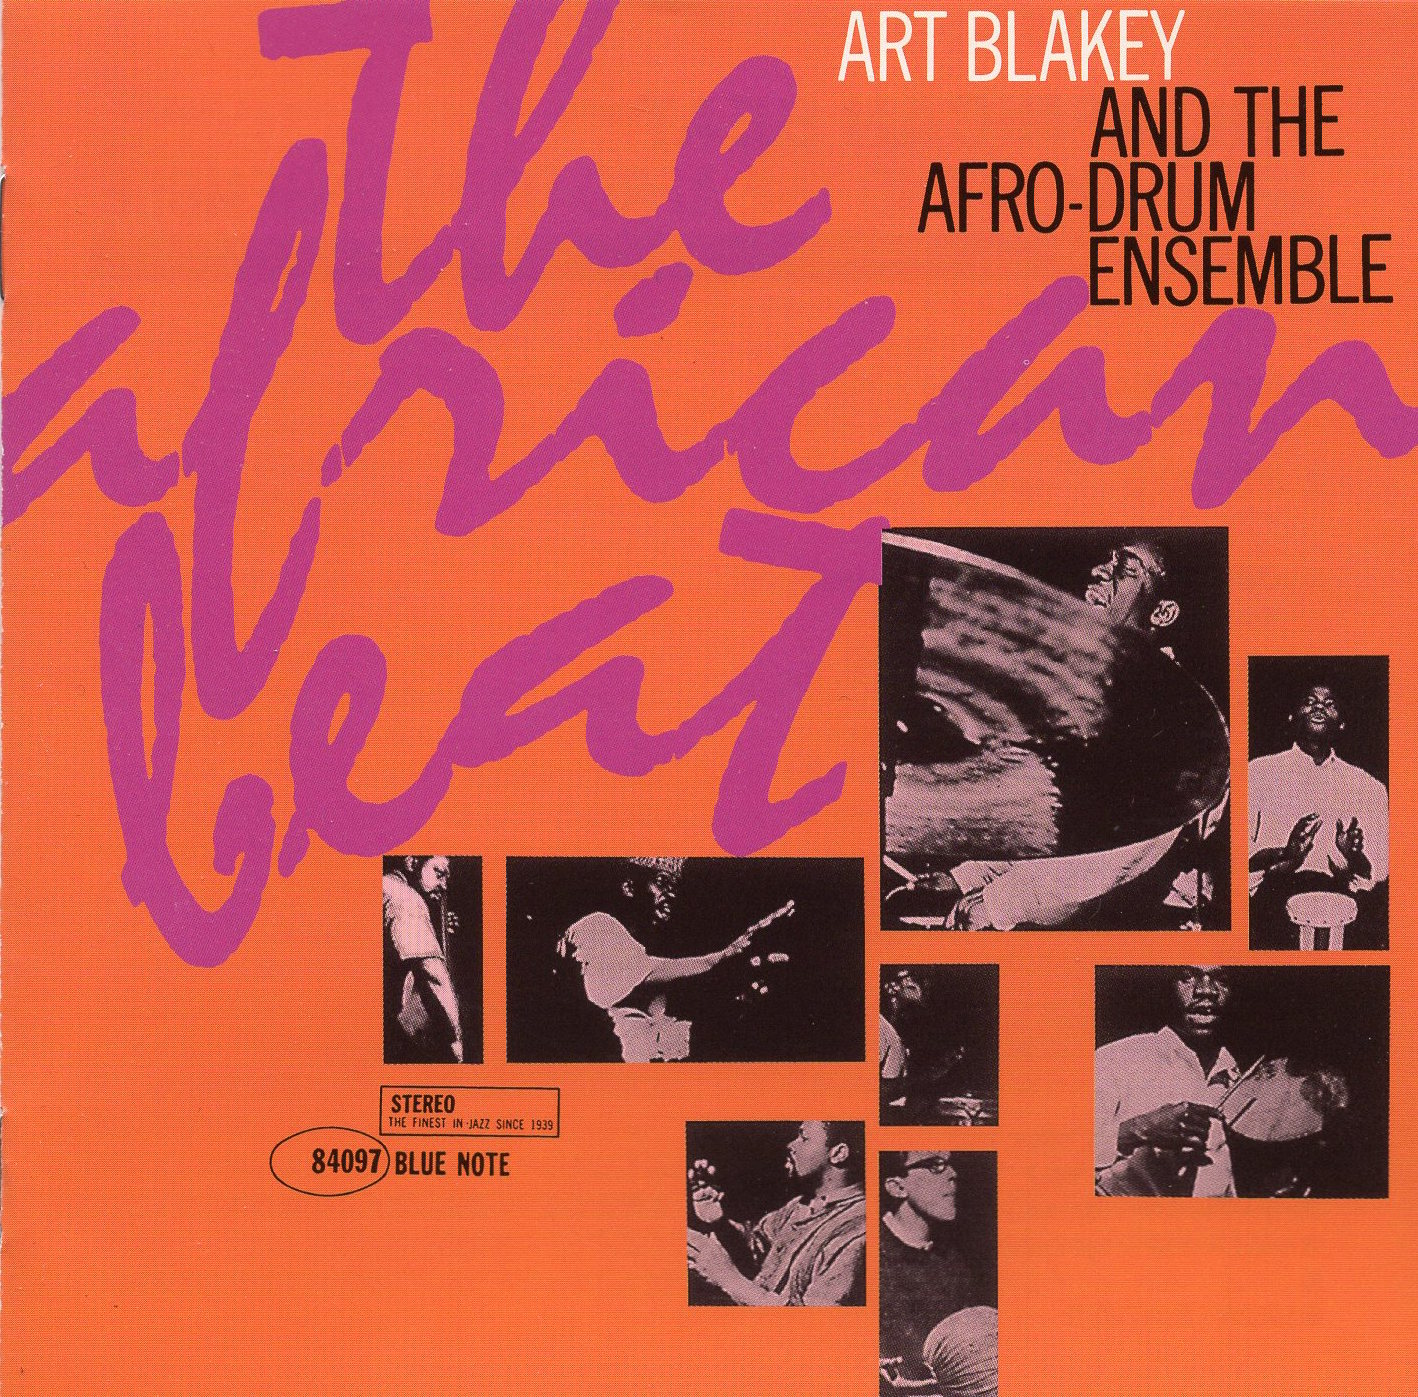 """Ayiko Ayiko: Art Blakey and The Afro-Drum Ensemble"" Art Blakey"